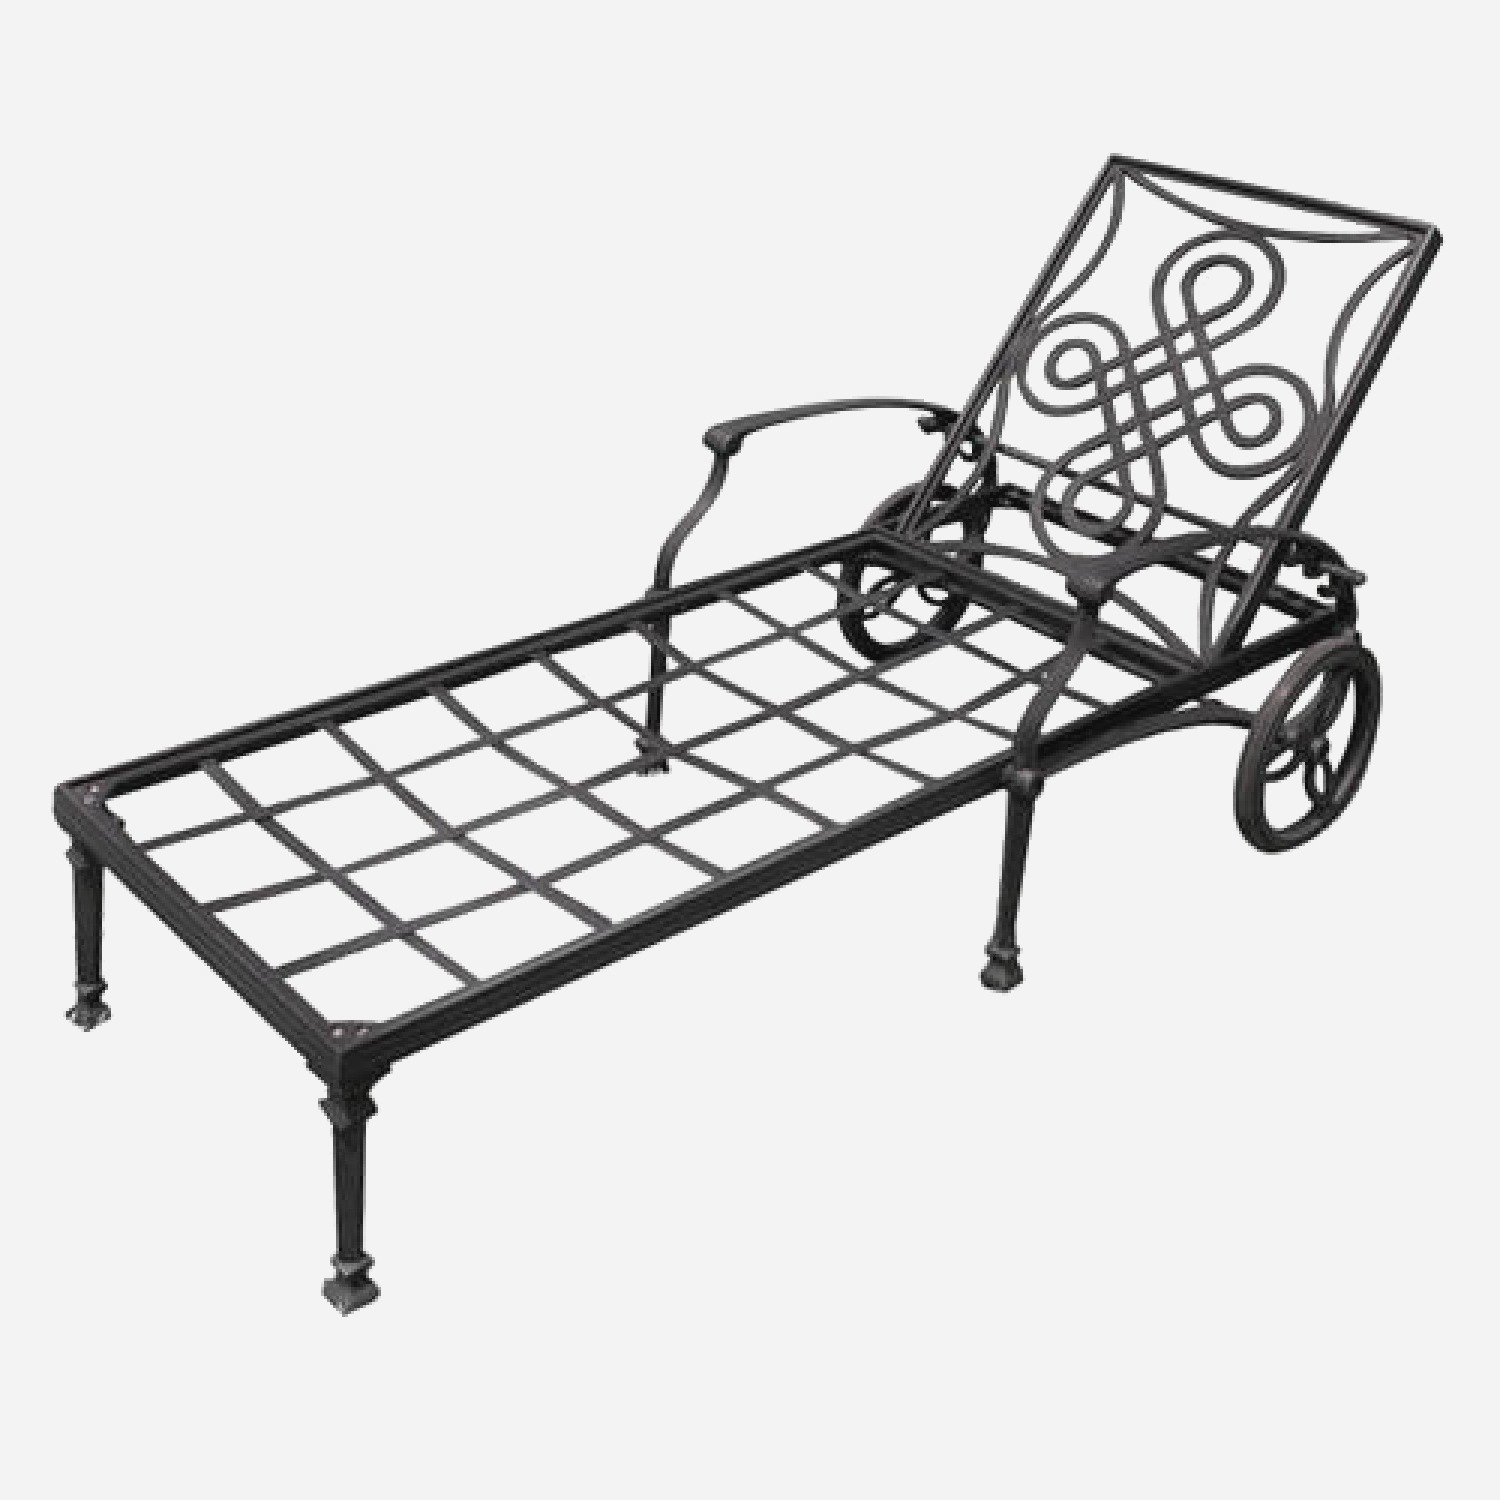 Lawn Chair Drawing At Getdrawings